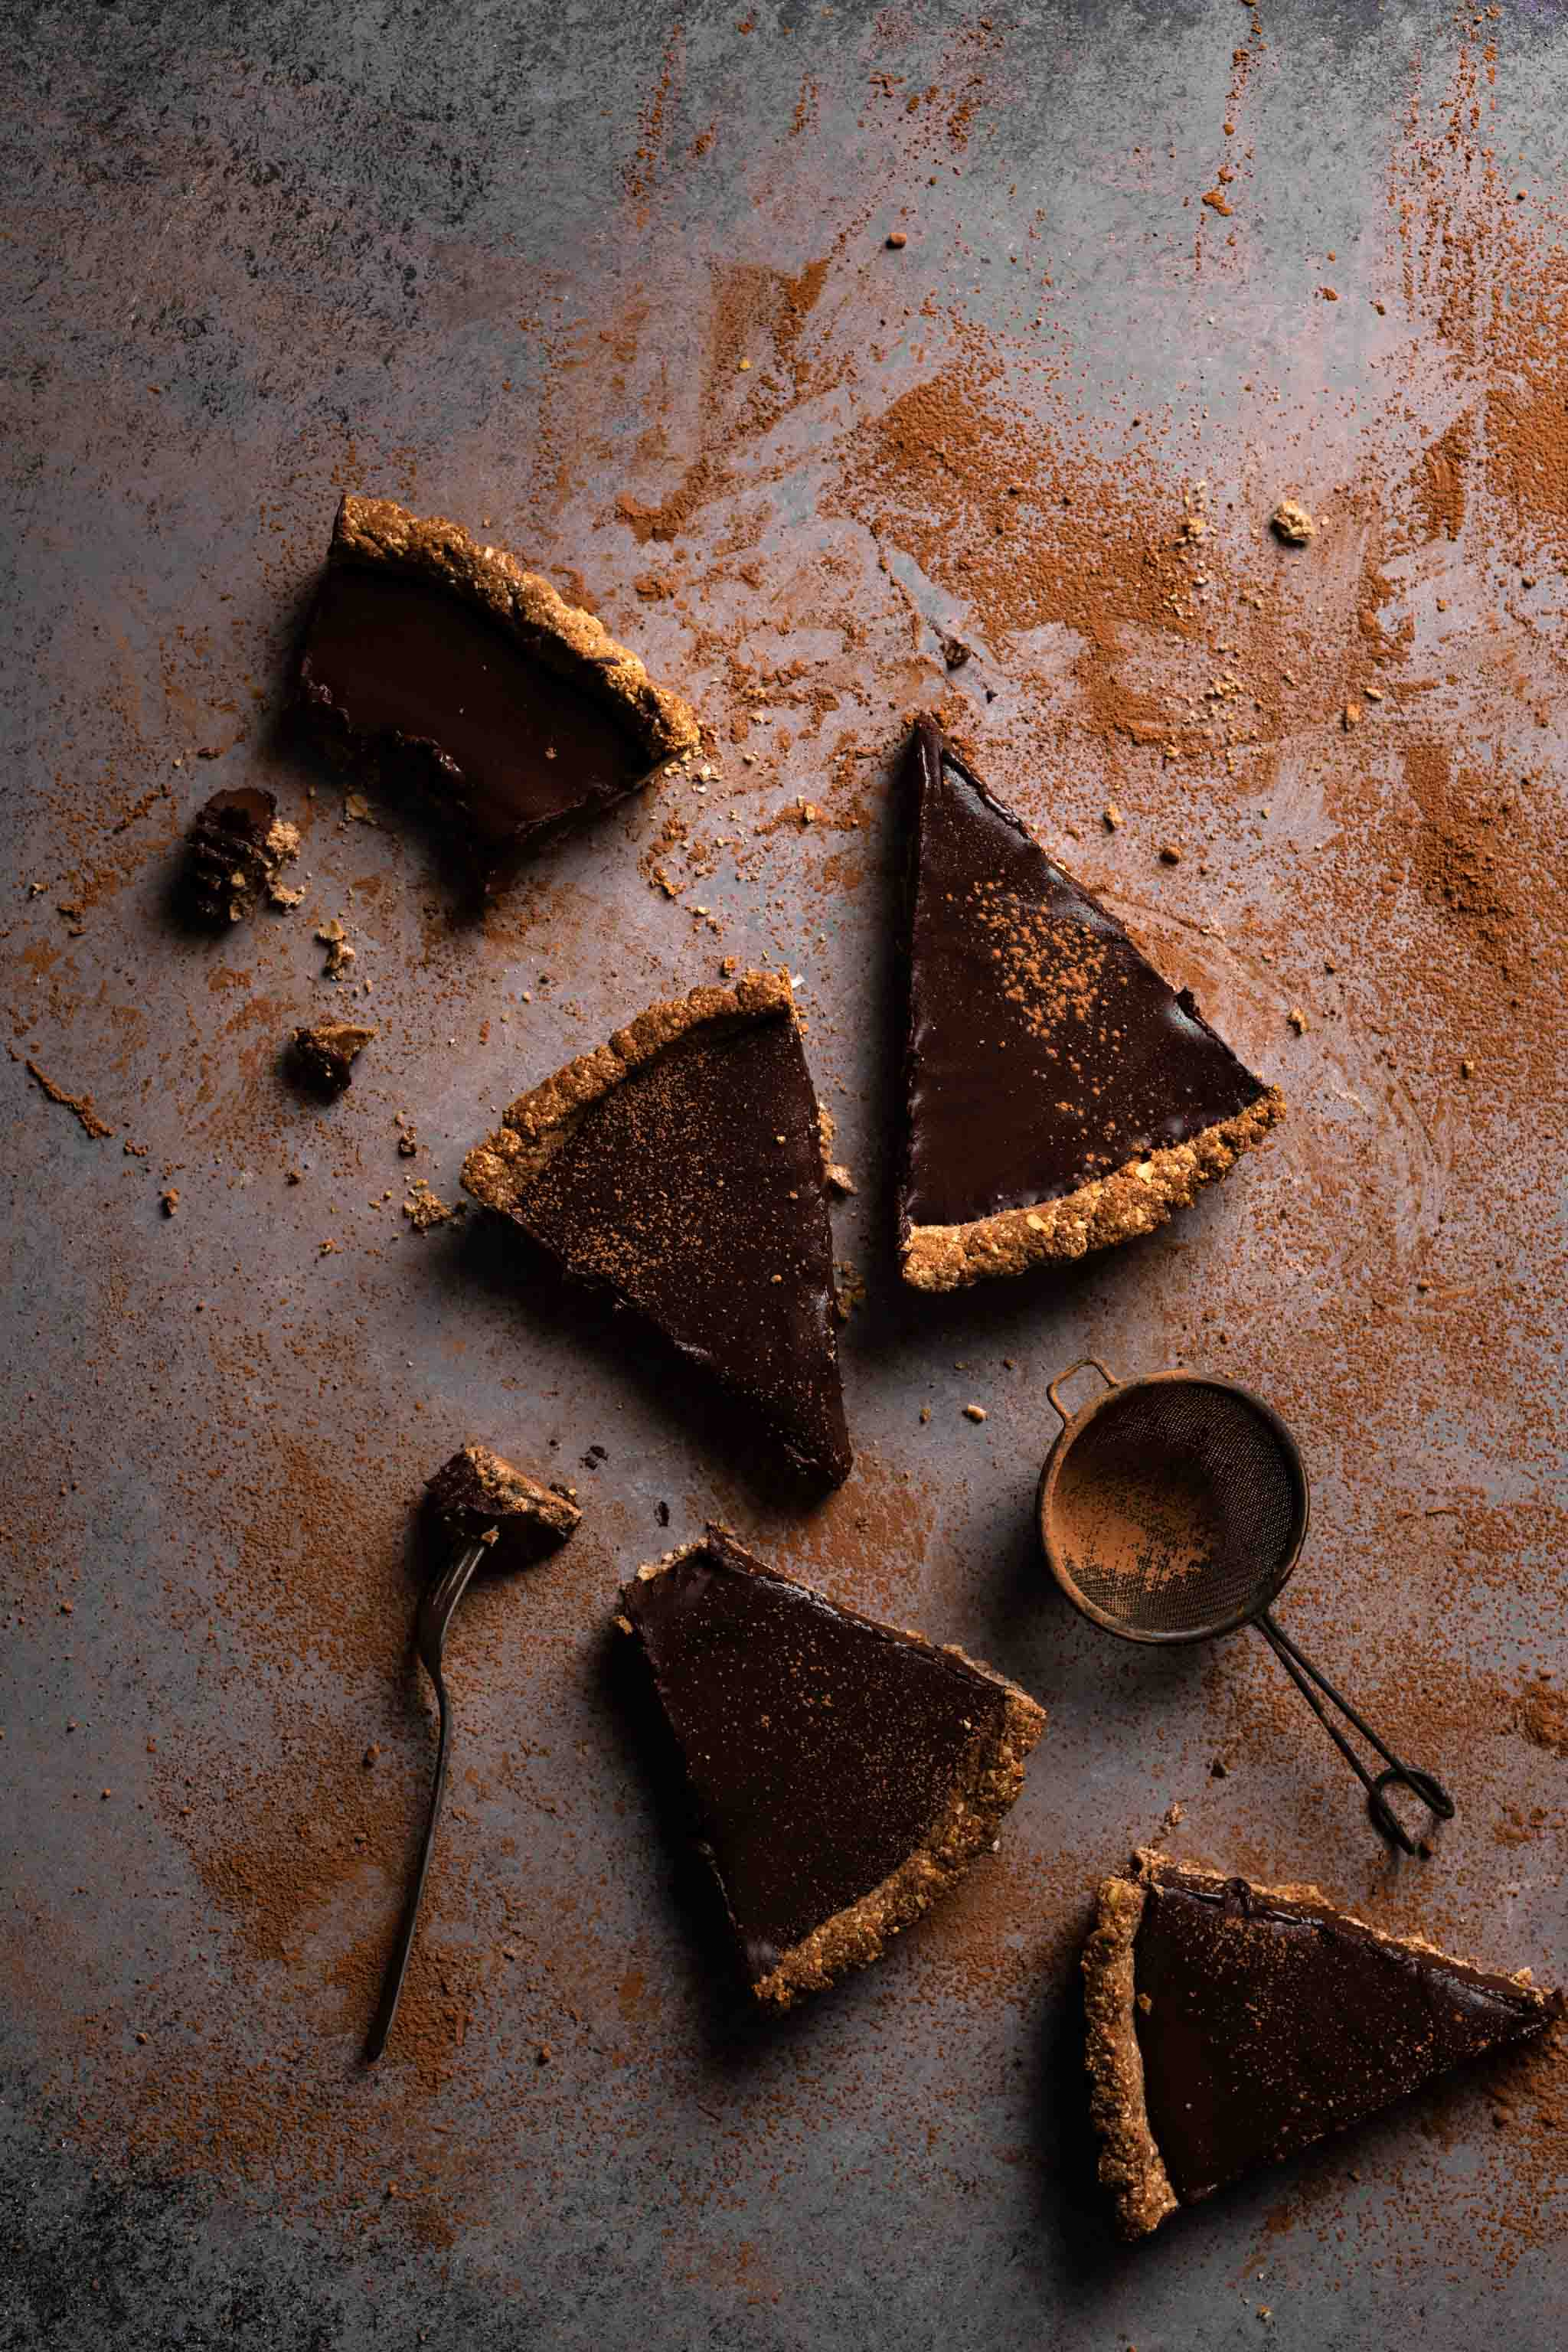 Slices of Chocolate Tart